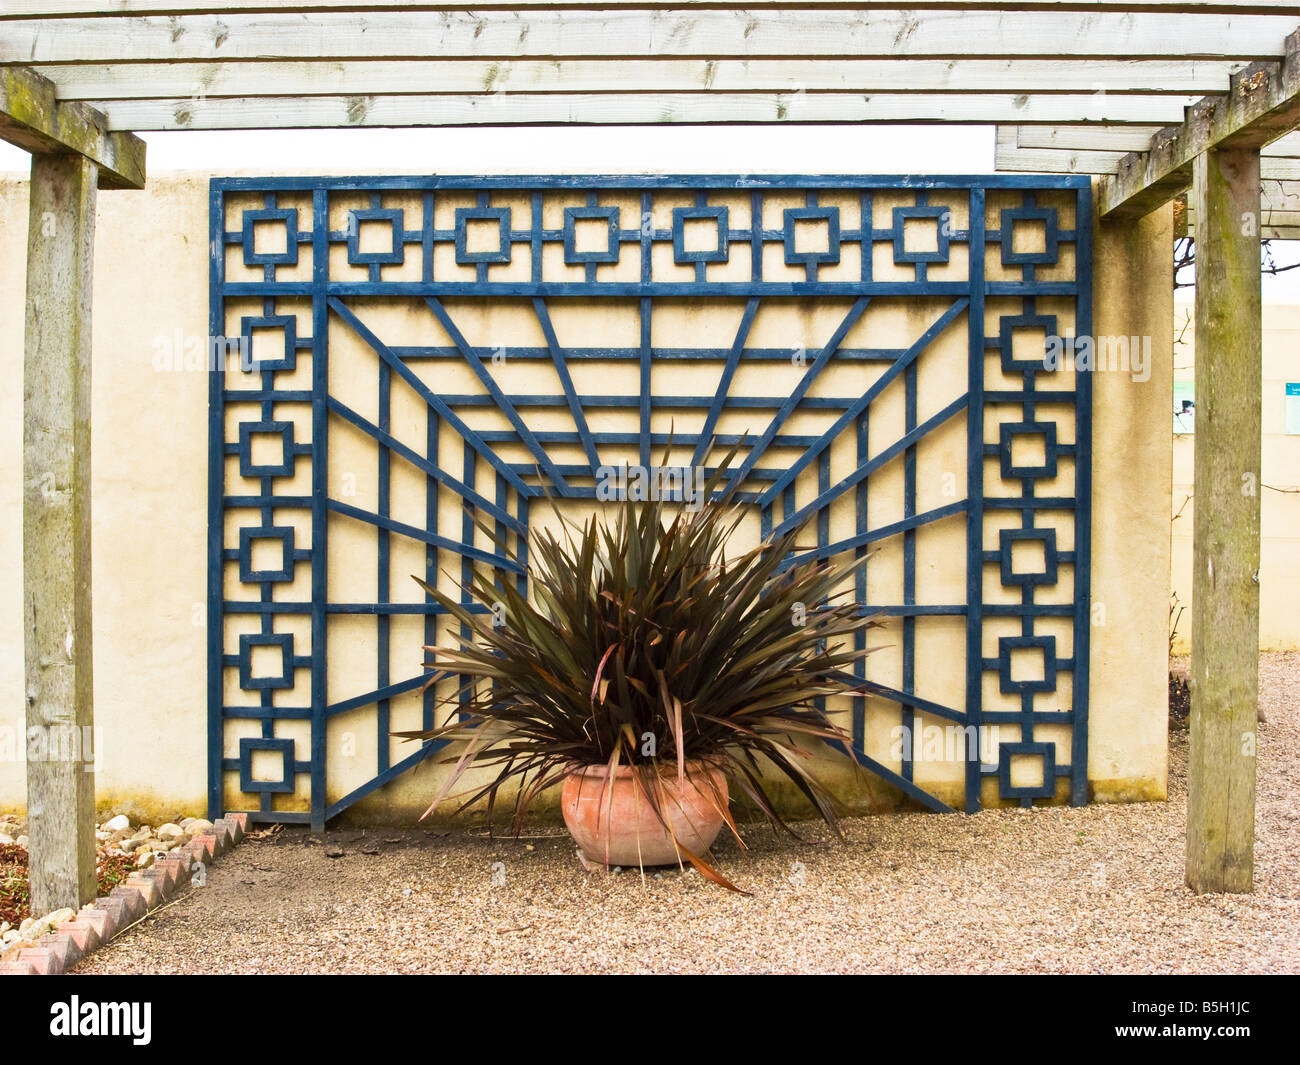 Garden design using ornamental trellis against a wall Stock